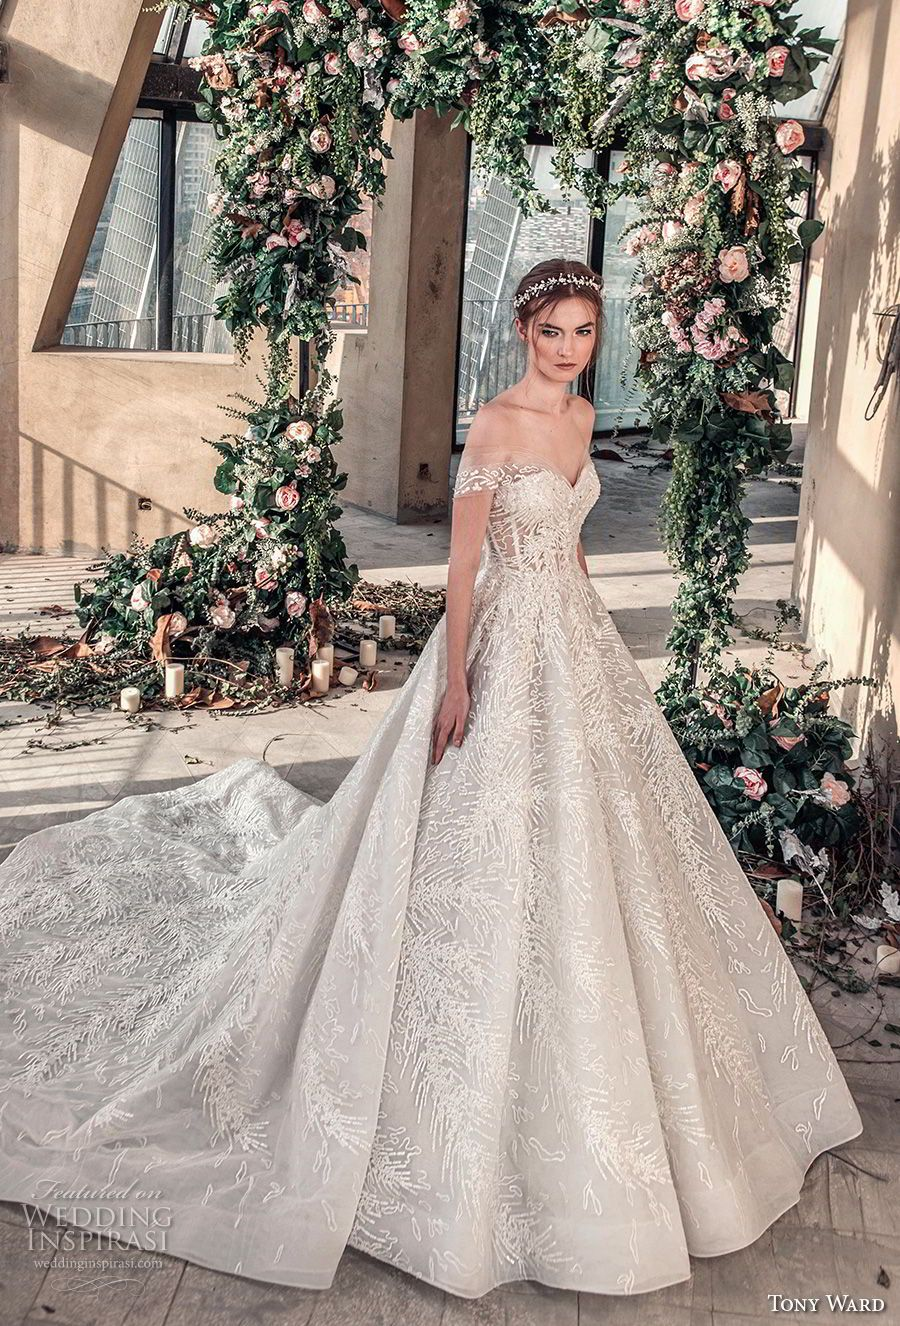 tony ward mariee 2019 off the shoulder sweetheart neckline full  embellishment romantic princess ball gown a line wedding dress chapel train  (2) mv -- Tony ... ac204d6d1c16